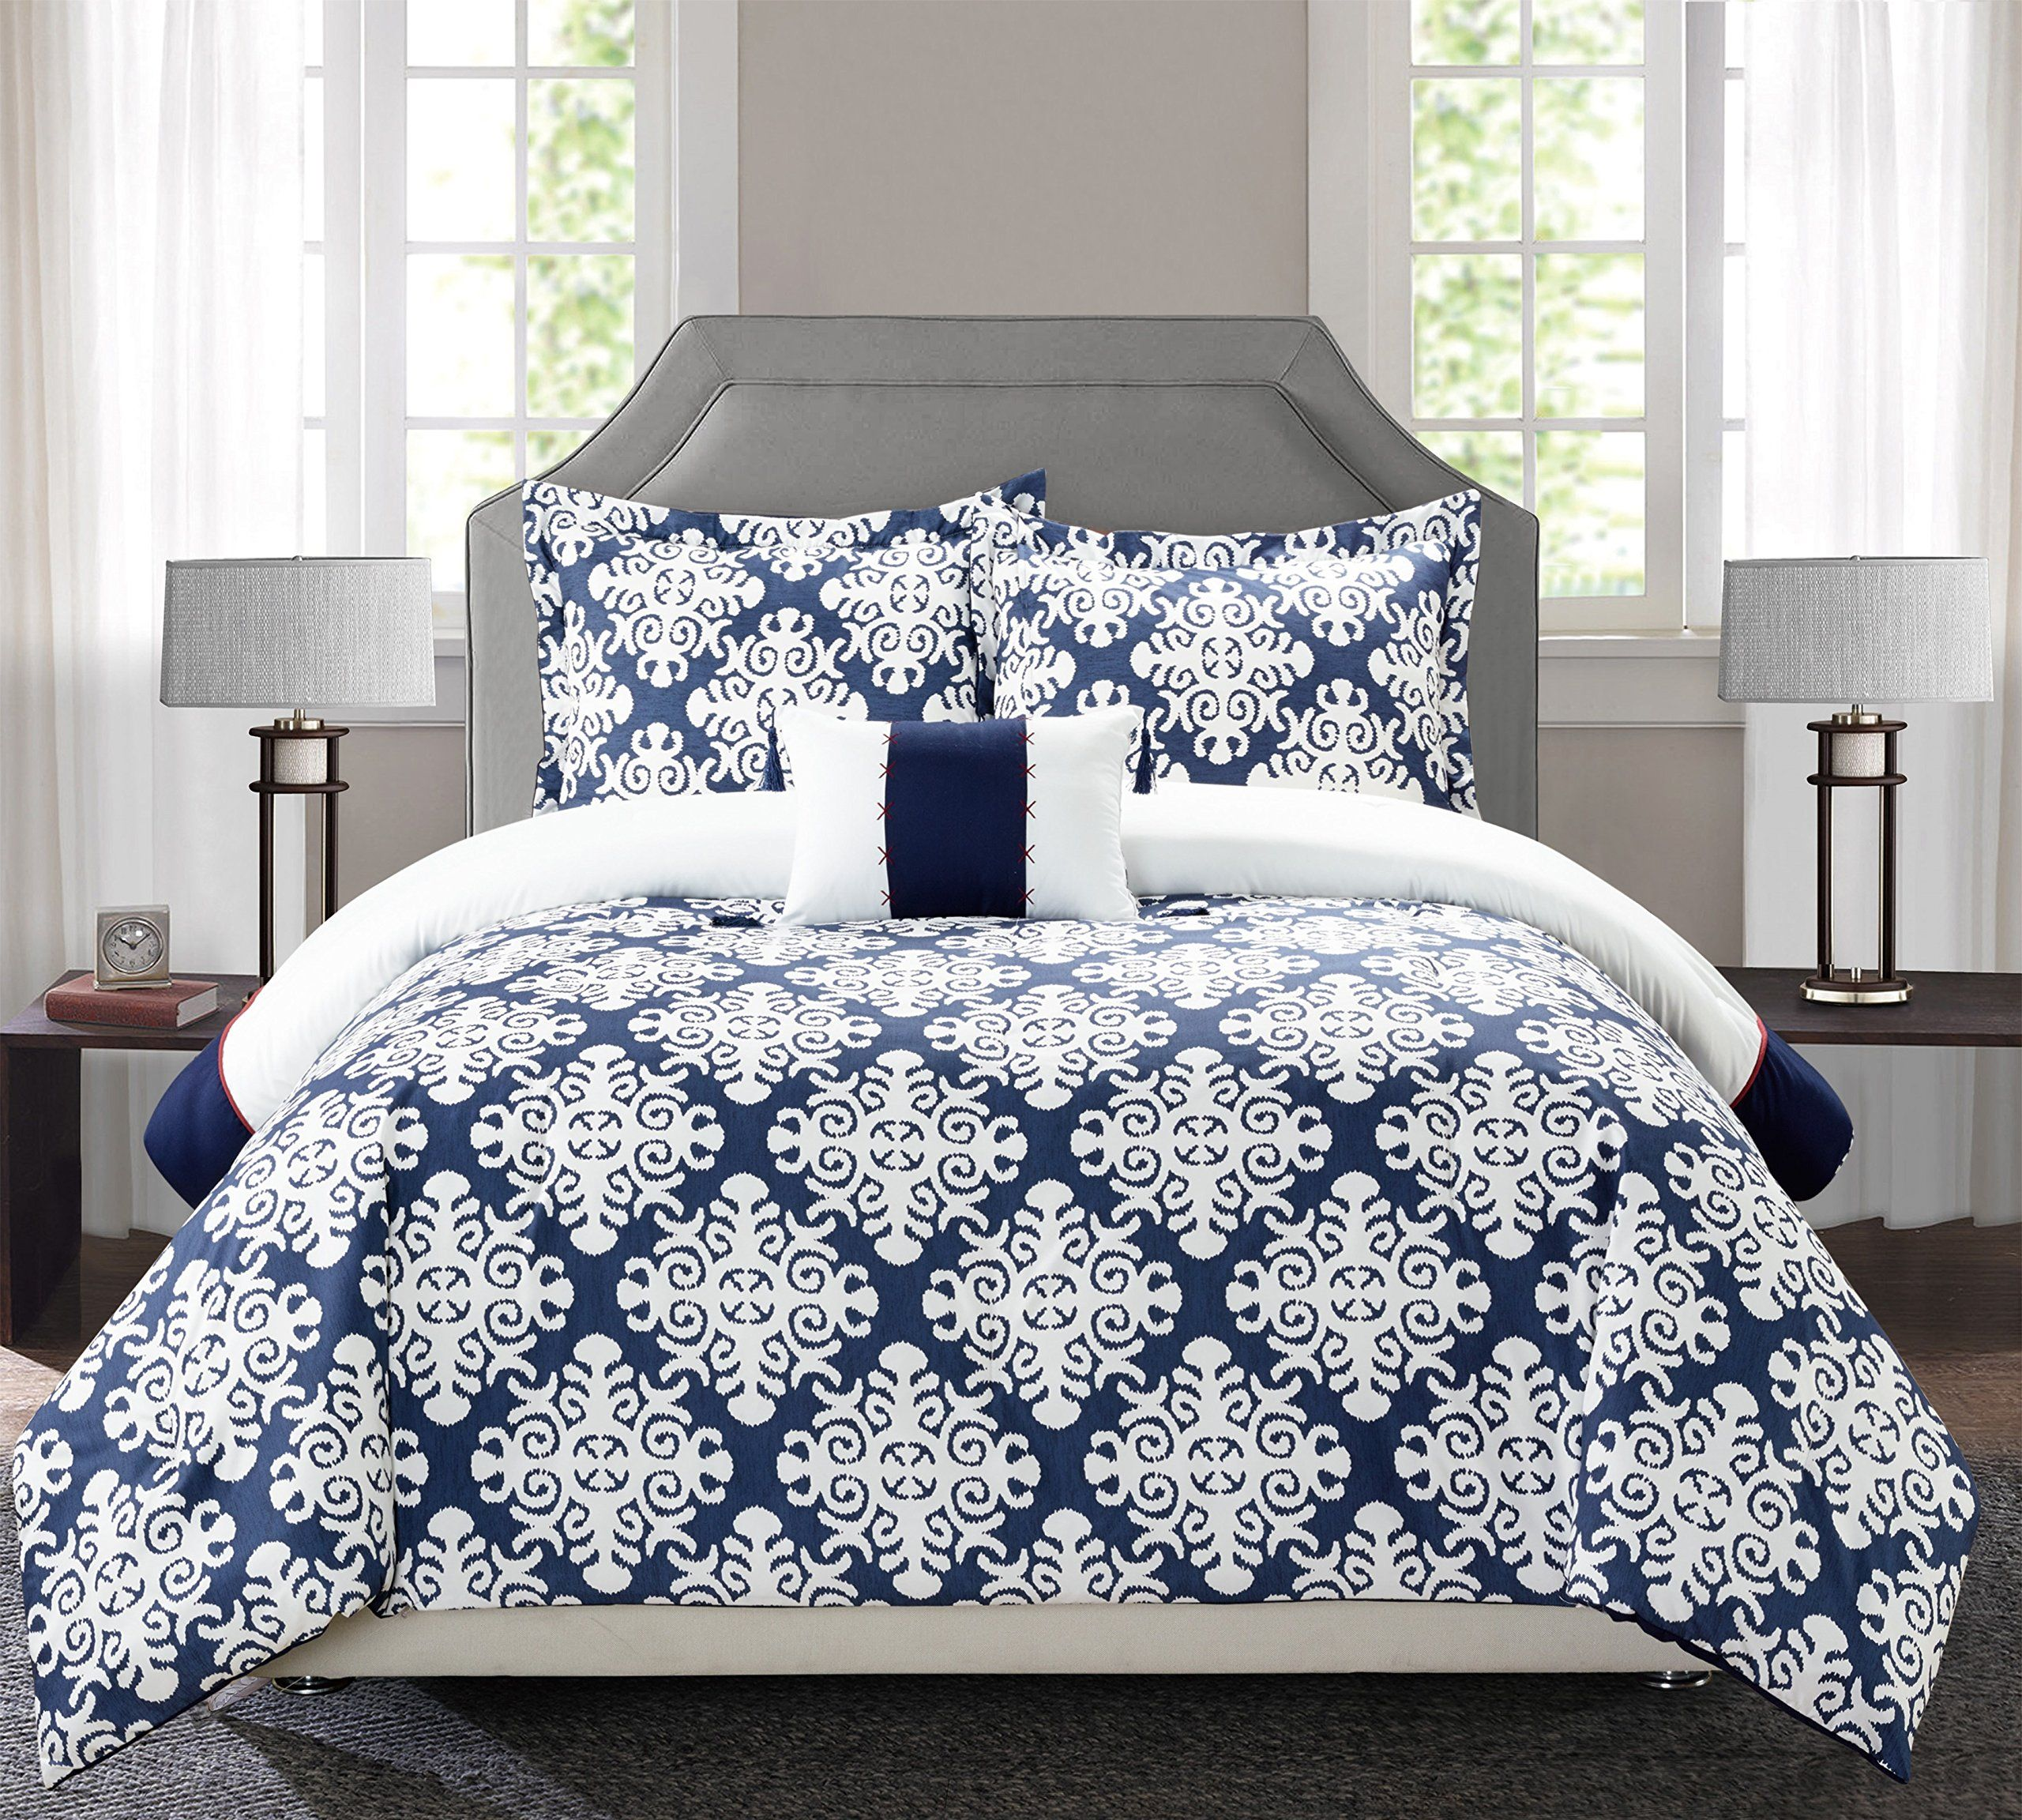 Perfect Home 4 Piece Floyd Navy Blue And White Reversible Hotel Collection King Duvet Cover Set Navy Clic Duvet Cover Sets Navy Duvet Covers Blue Duvet Cover